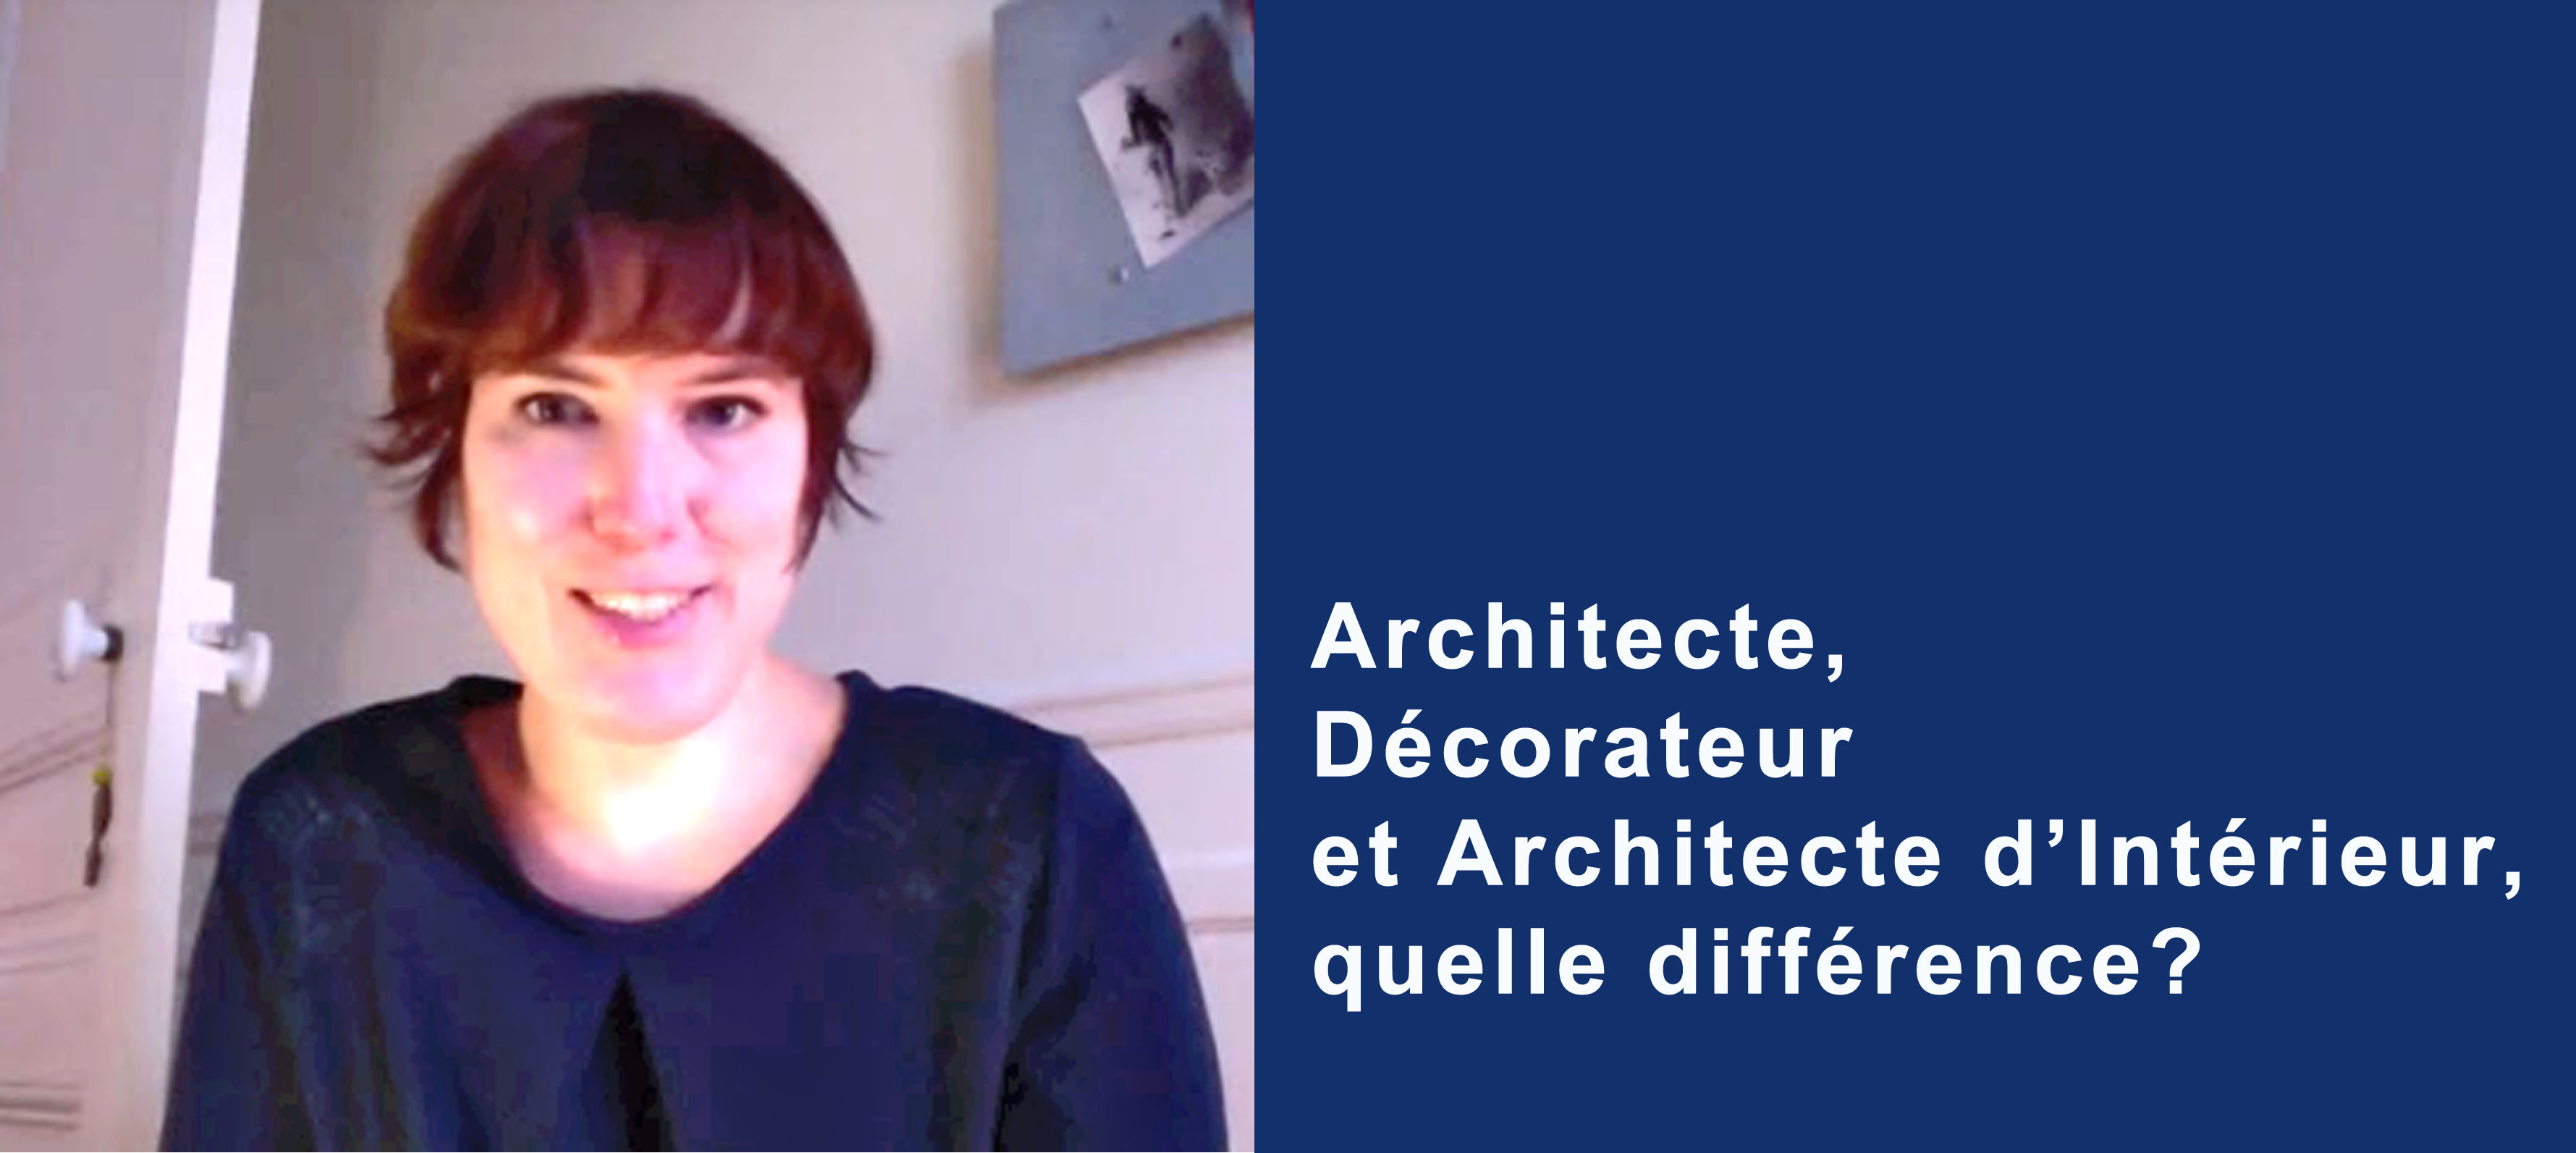 Difference Entre Decorateur Et Architecte D Interieur